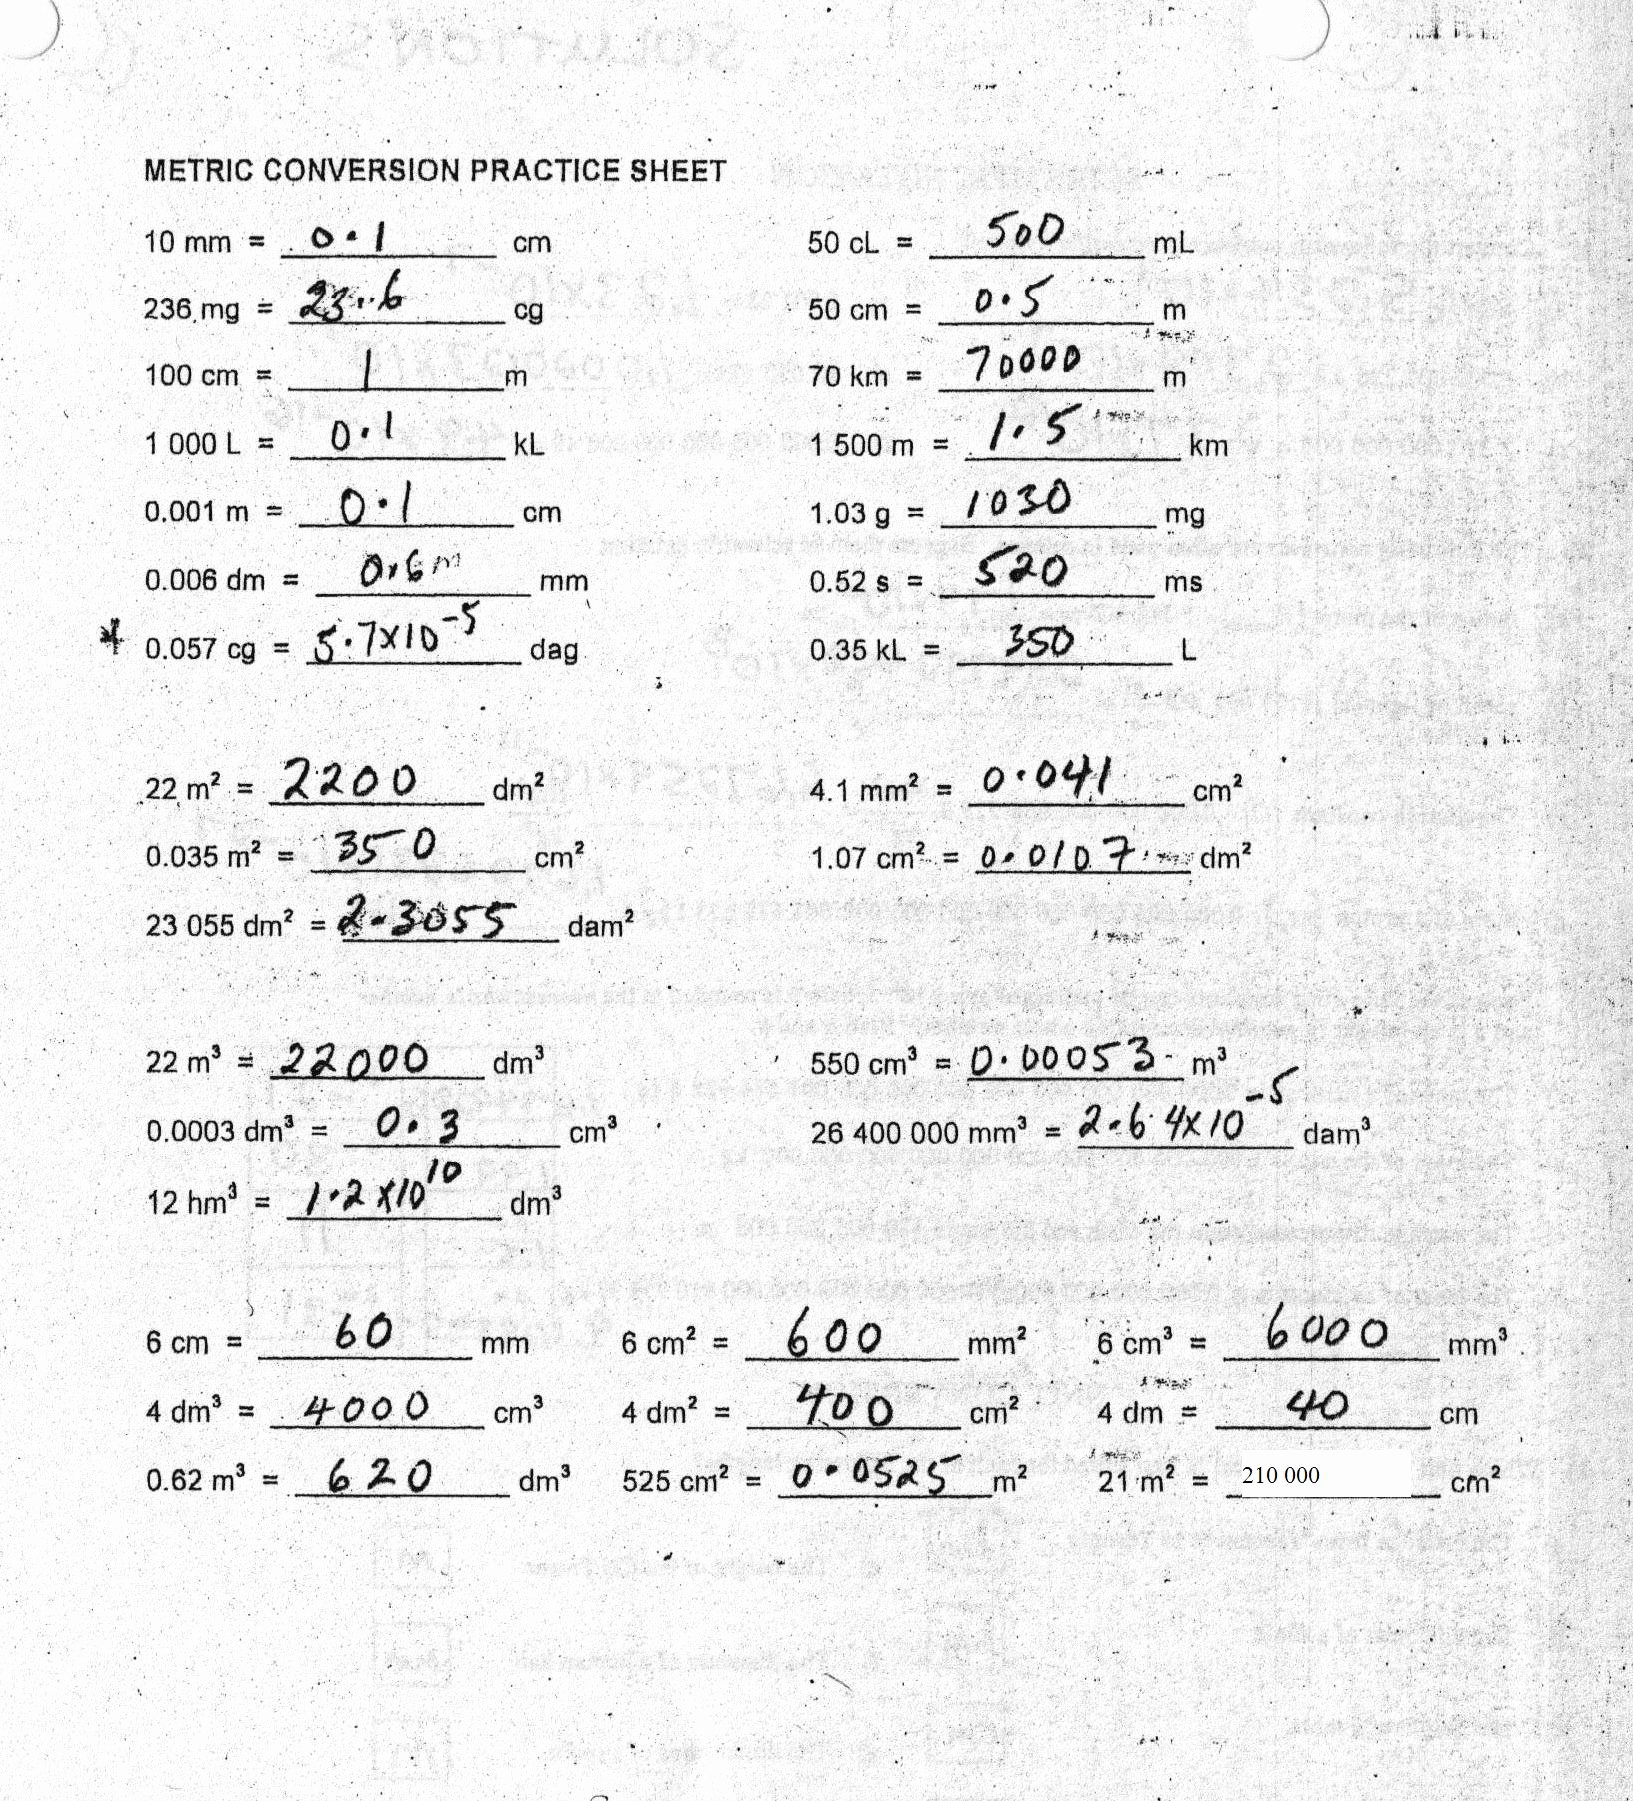 Metric Conversion Worksheet with Answers Lovely 10 Best Of Metric Conversion Worksheet Pdf King